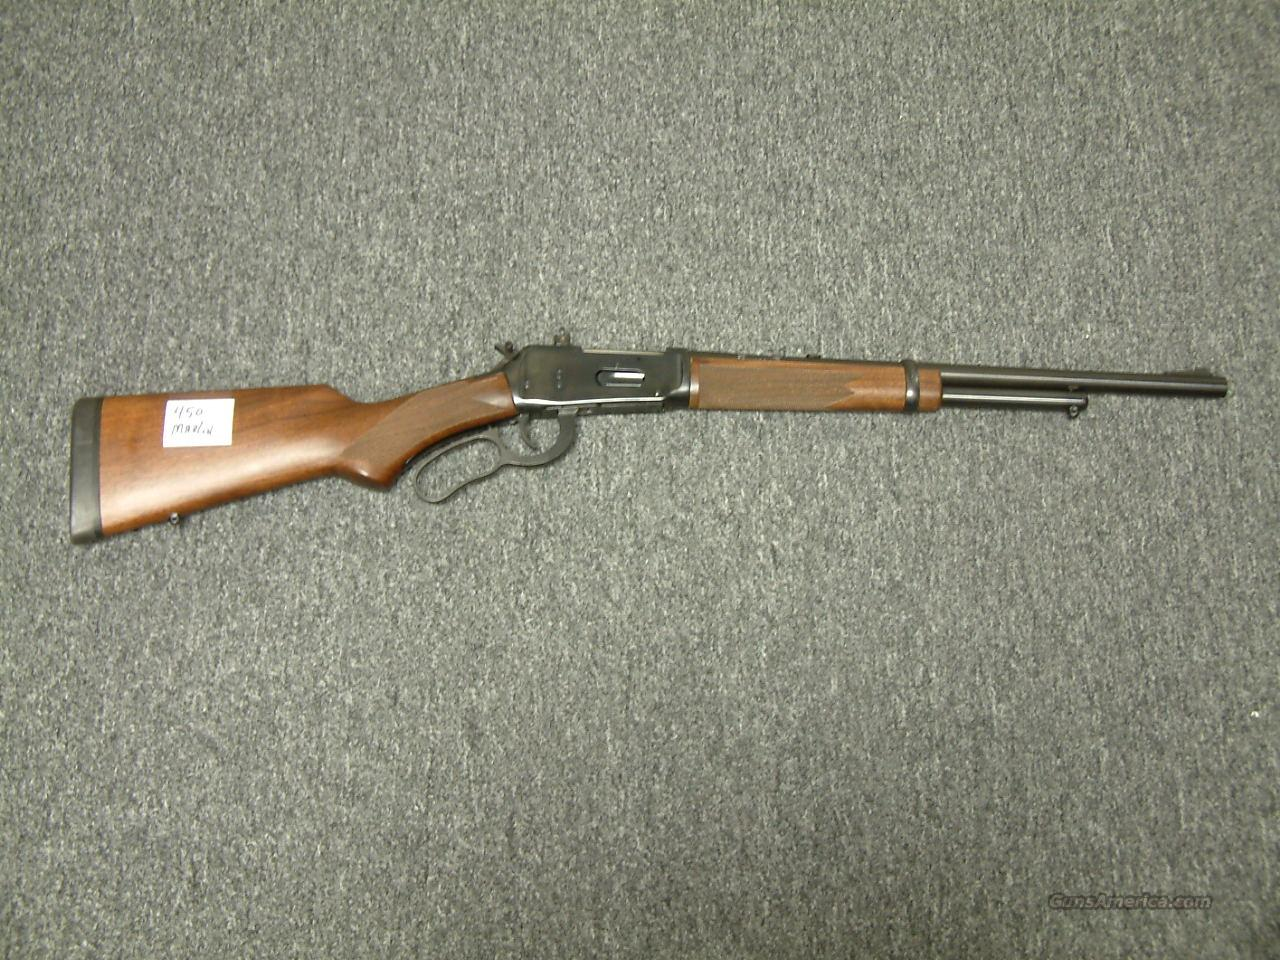 94  Timber Carbine  .450 marlin  Guns > Rifles > Winchester Rifles - Modern Lever > Model 94 > Post-64